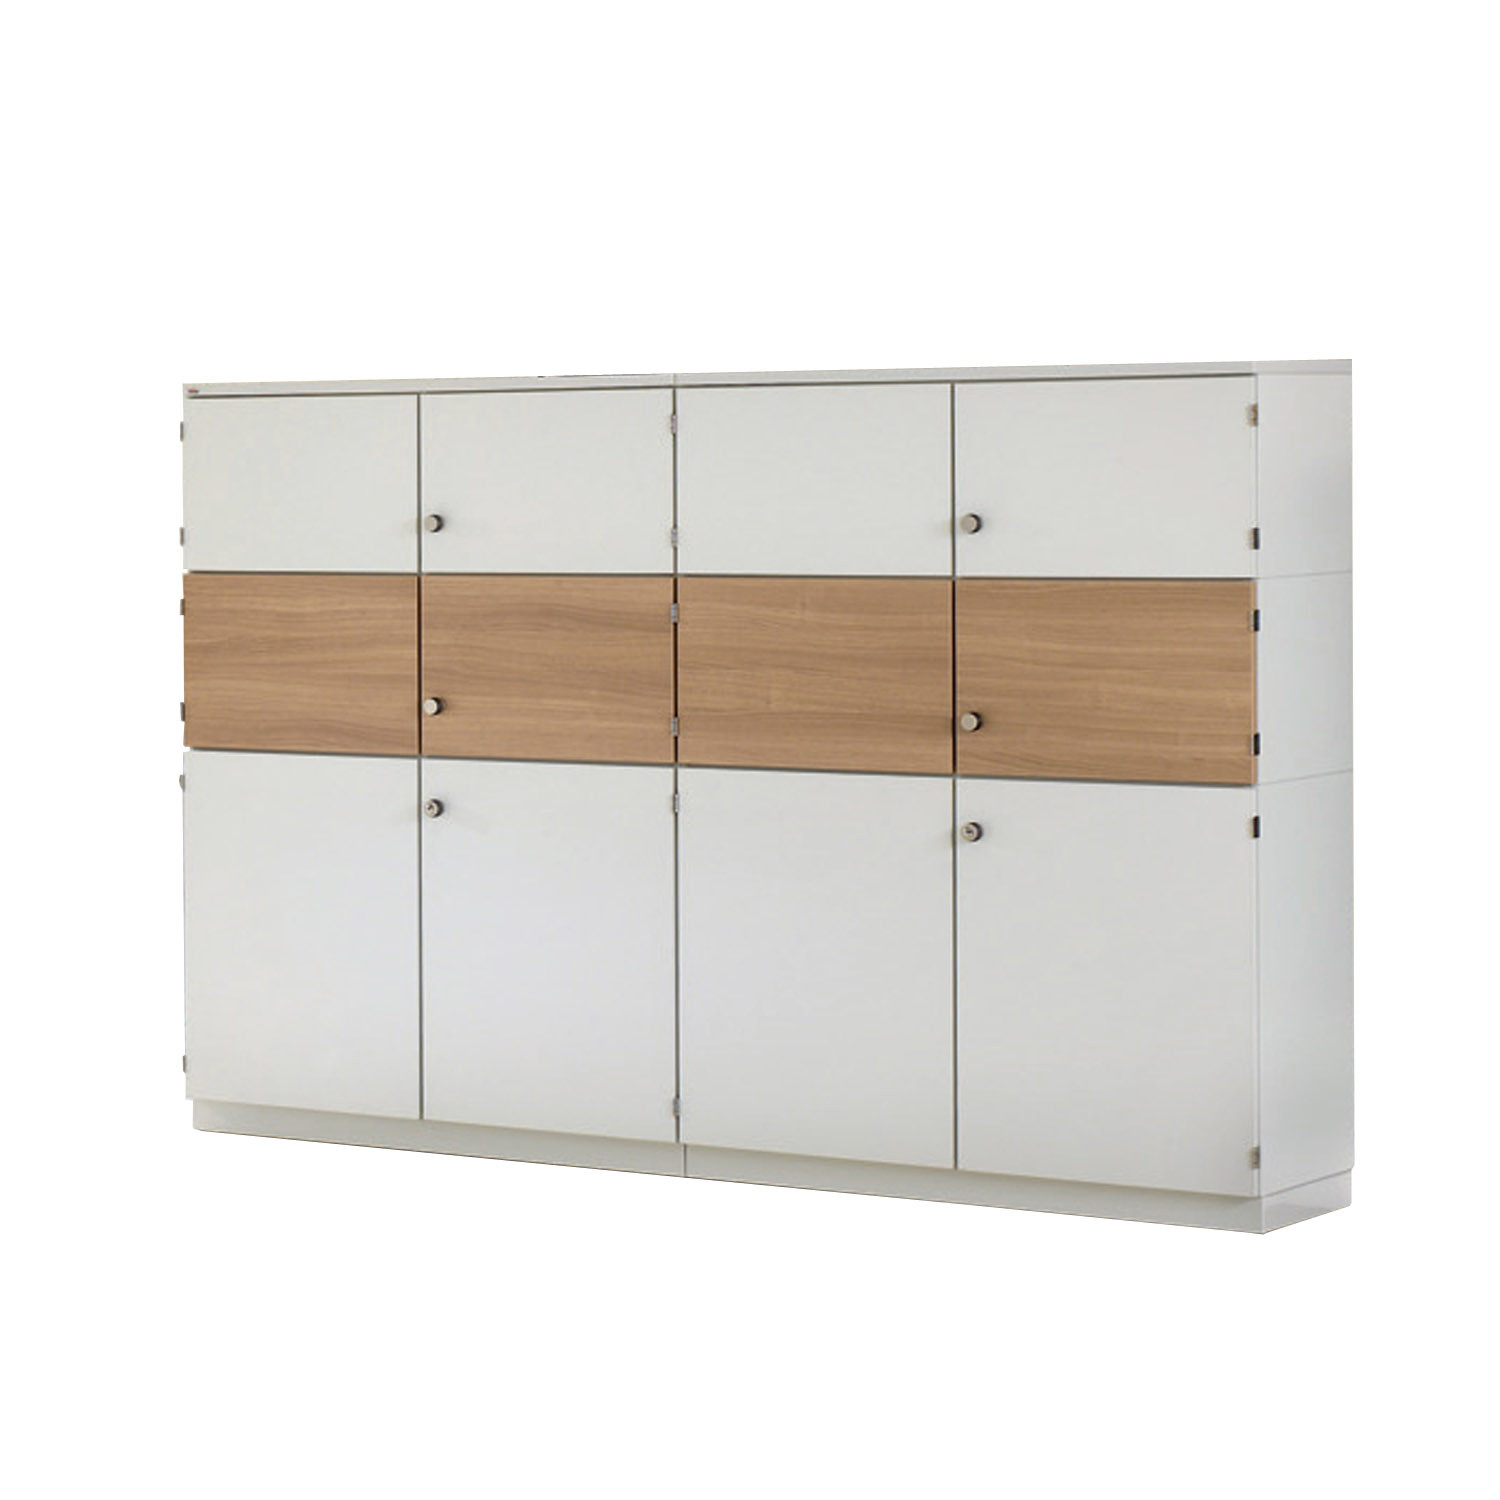 TriASS Cabinets